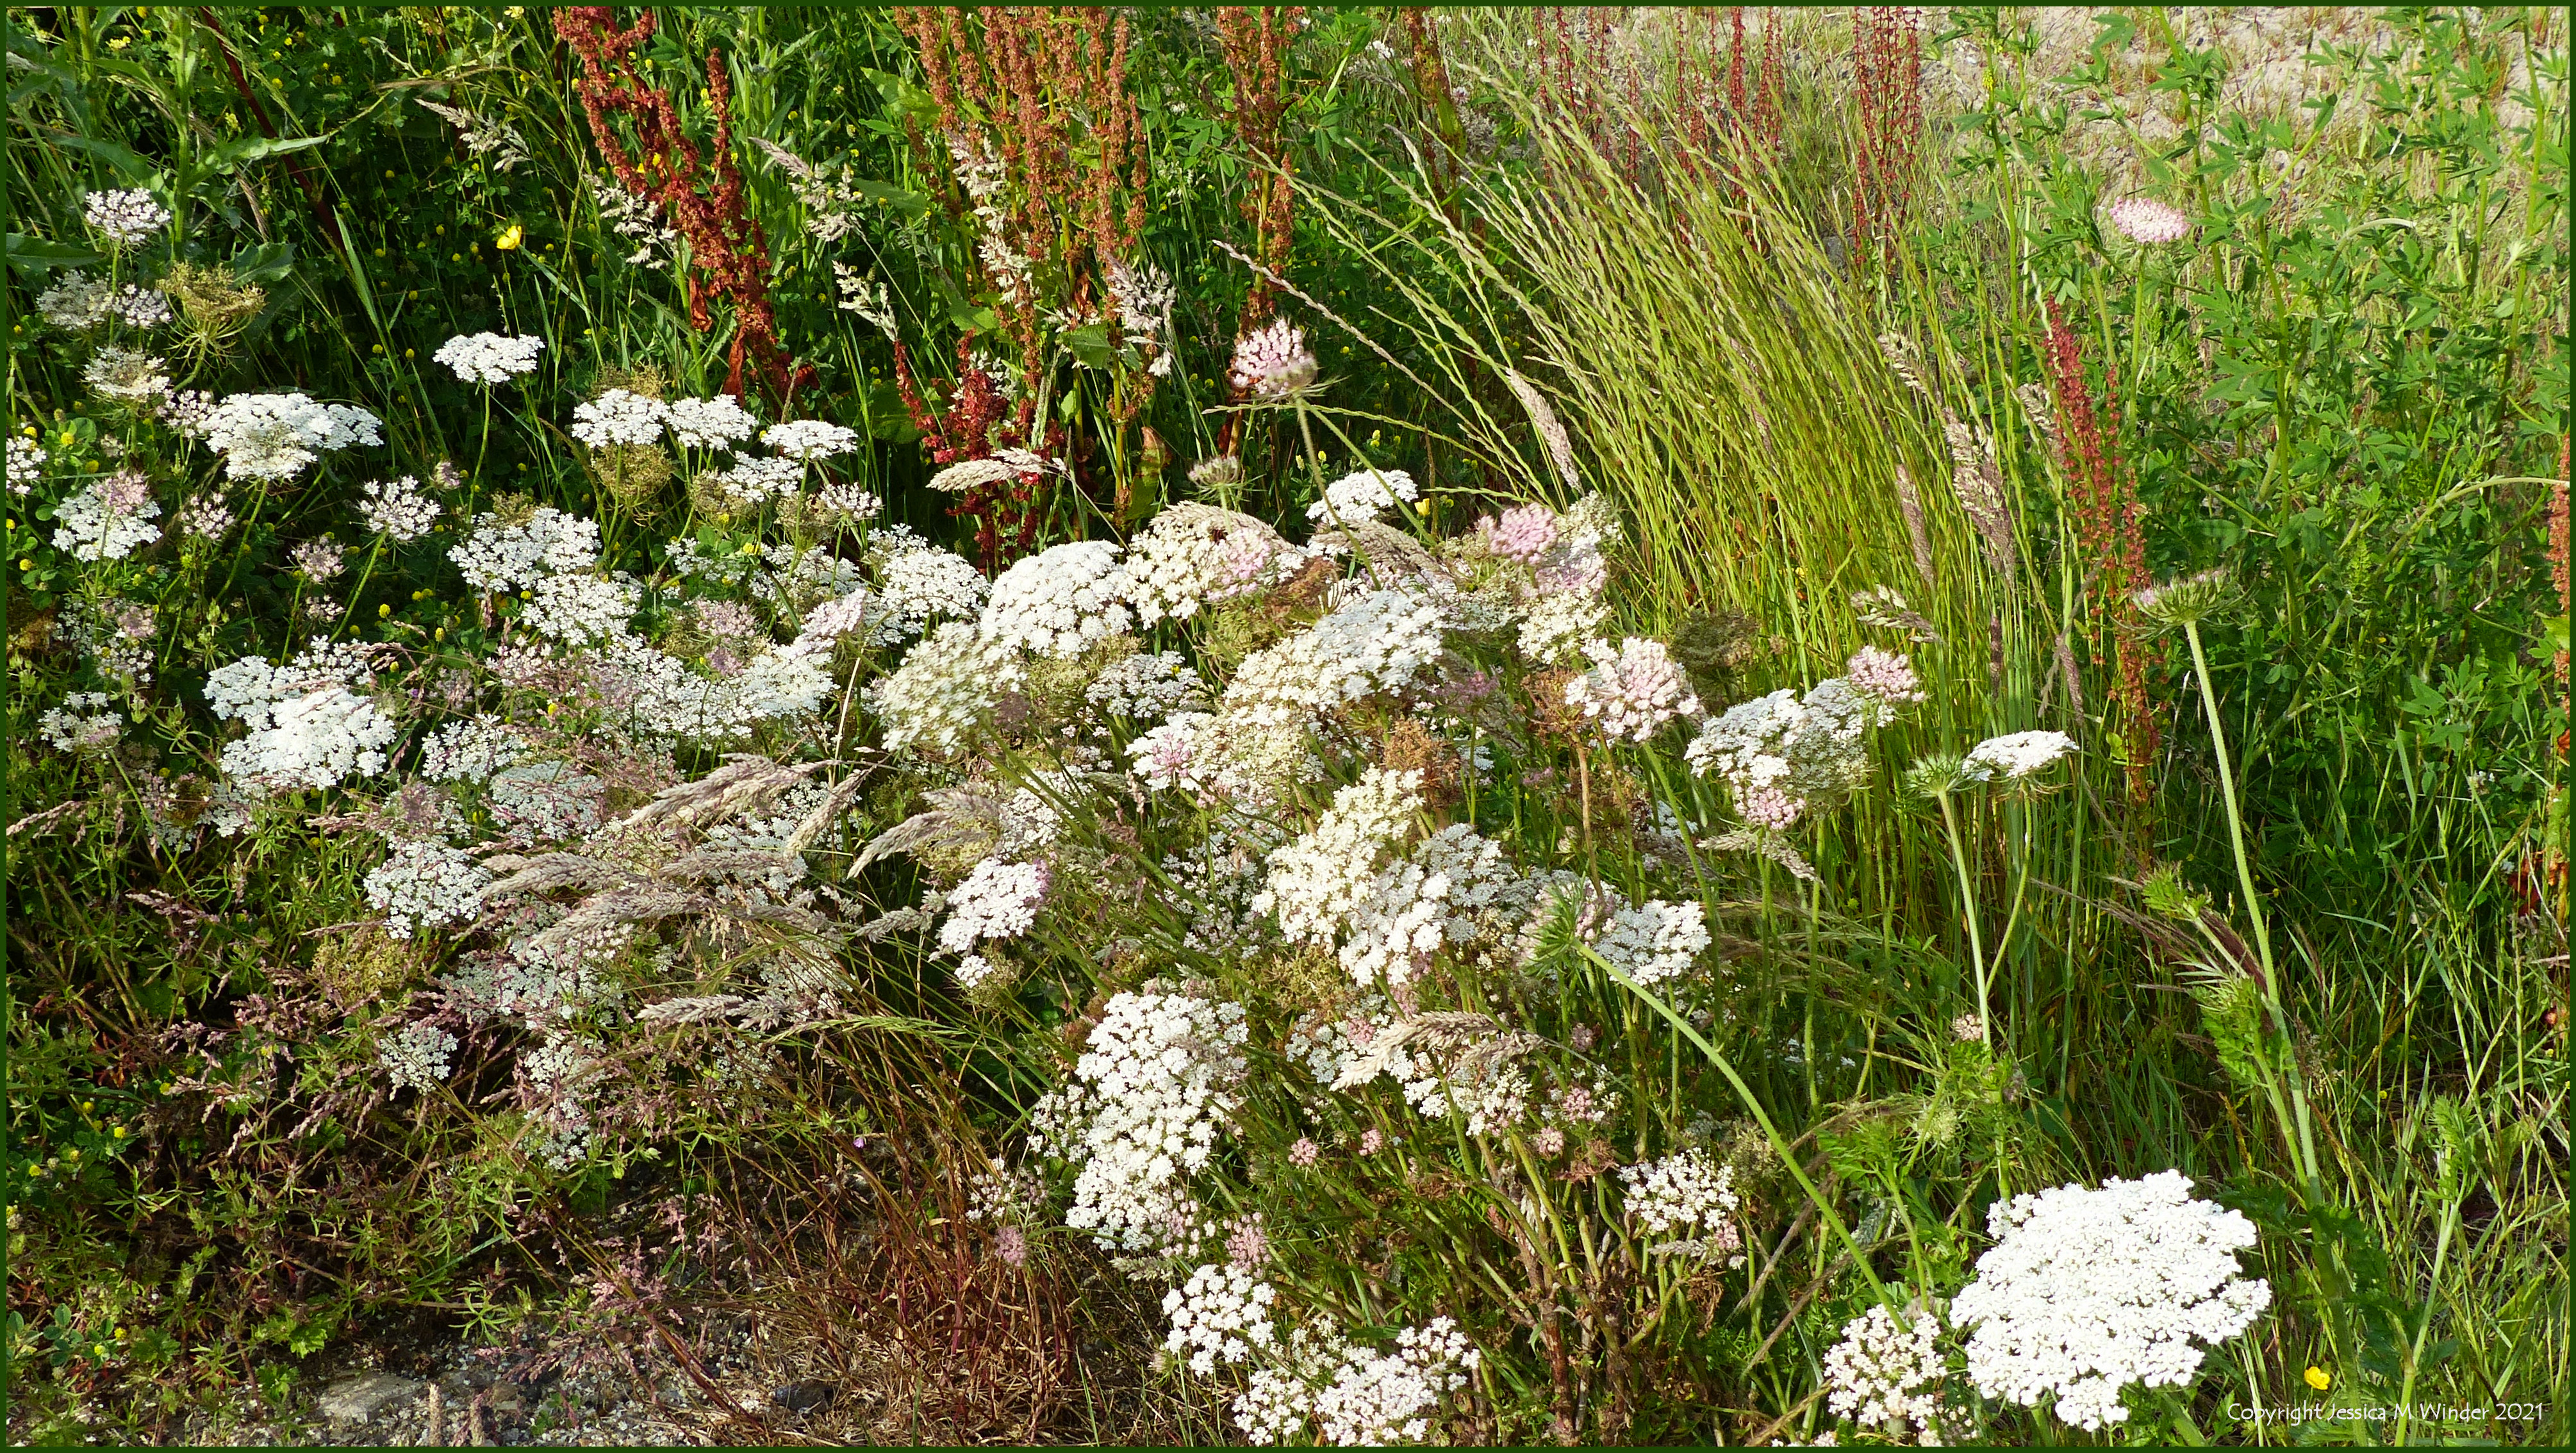 Wild flowering plants and grasses on wasteland